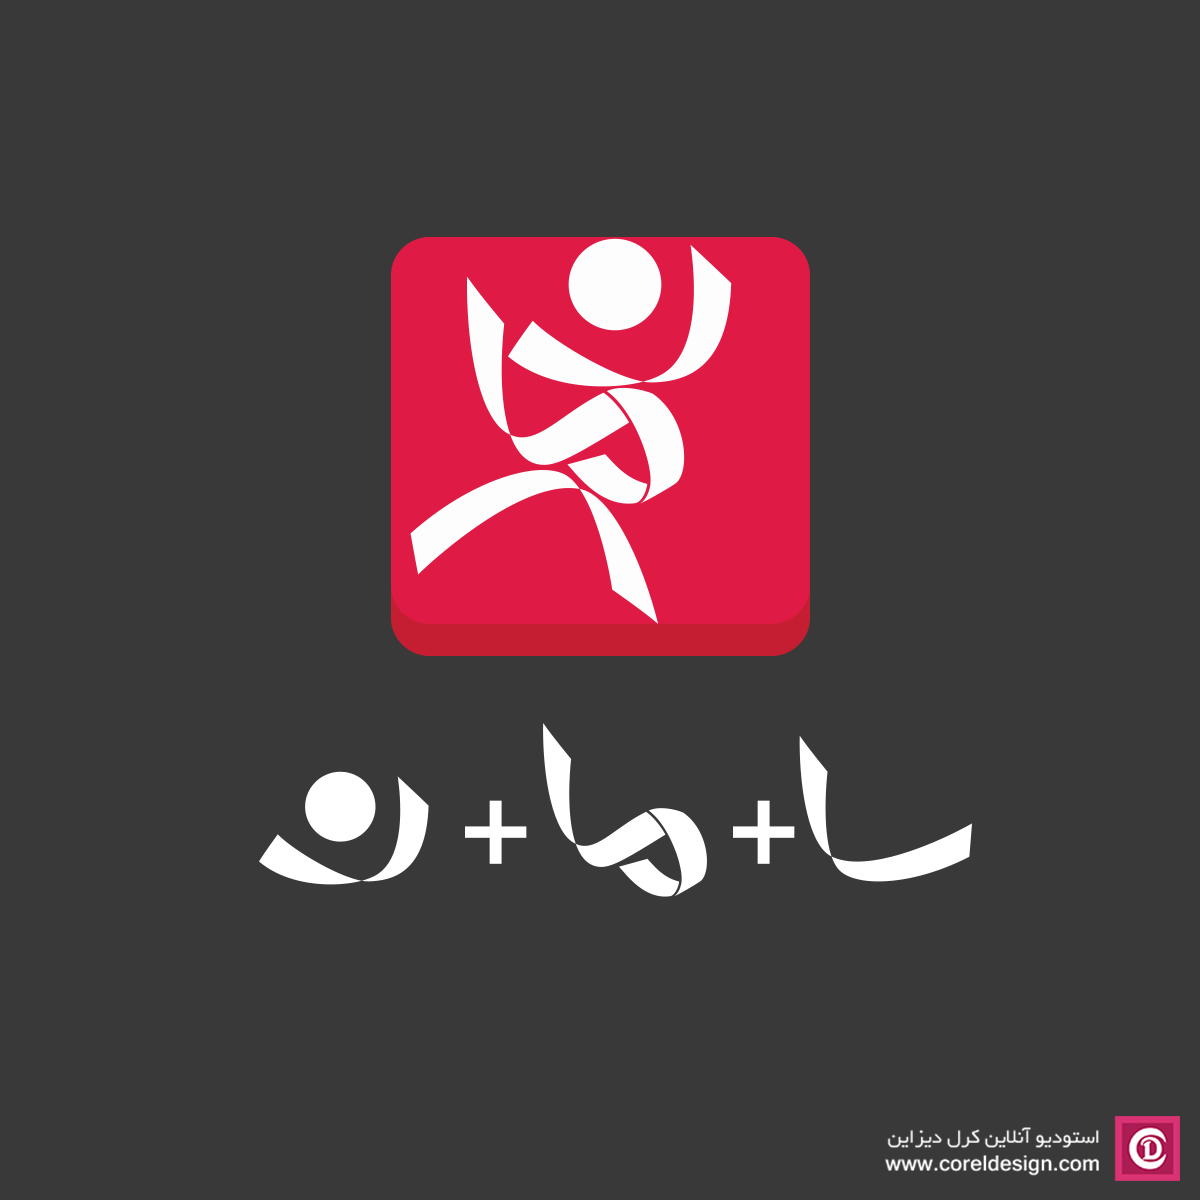 Saman_logo_By_CorelDesign_3